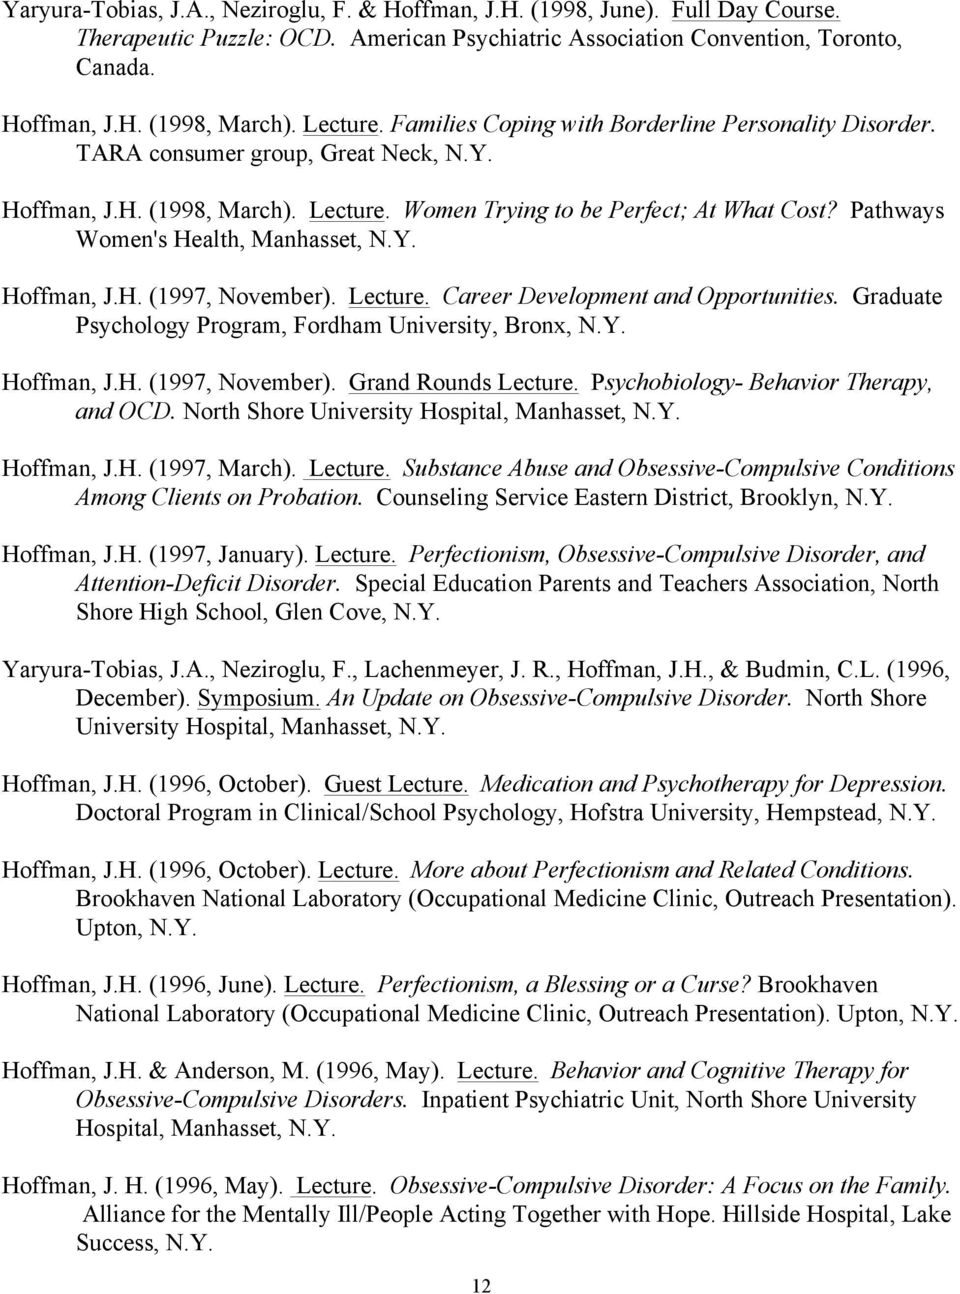 Pathways Women's Health, Manhasset, N.Y. Hoffman, J.H. (1997, November). Lecture. Career Development and Opportunities. Graduate Psychology Program, Fordham University, Bronx, N.Y. Hoffman, J.H. (1997, November). Grand Rounds Lecture.